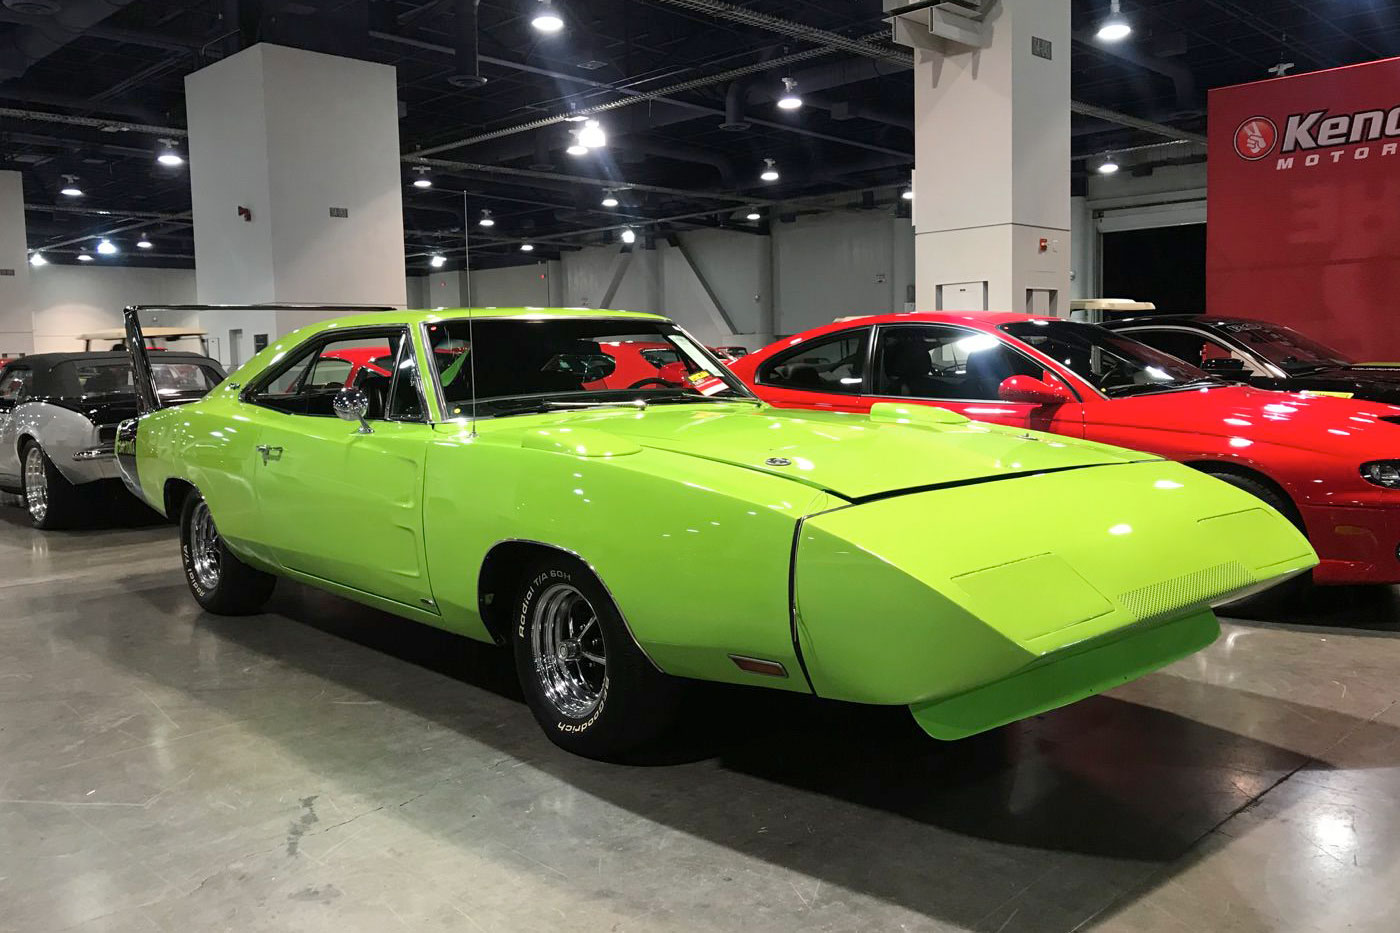 https://cdn2.hubspot.net/hubfs/347760/C_Blogs/Blog_Images/Mecum%20Las%20Vegas/plymouth-superbird.jpg